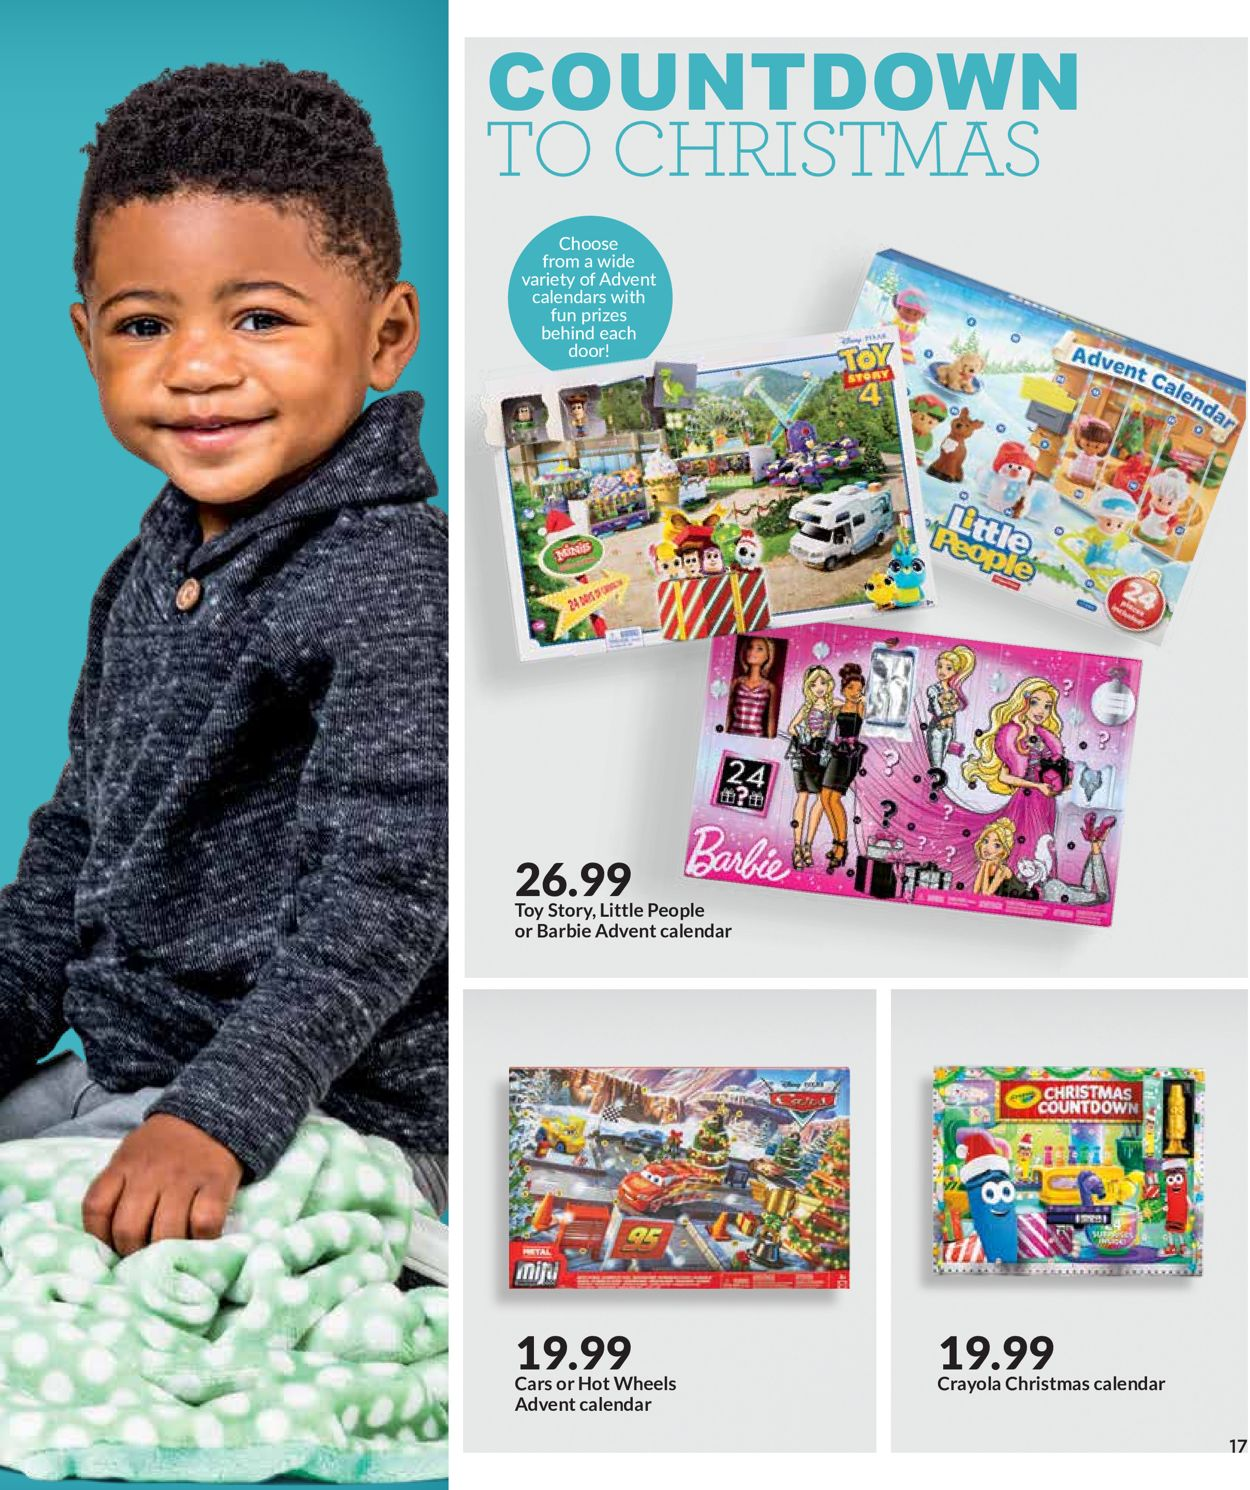 Jayc Foods Christmas Countdown 2020 HyVee Current weekly ad 11/01   12/24/2019 [17]   frequent ads.com